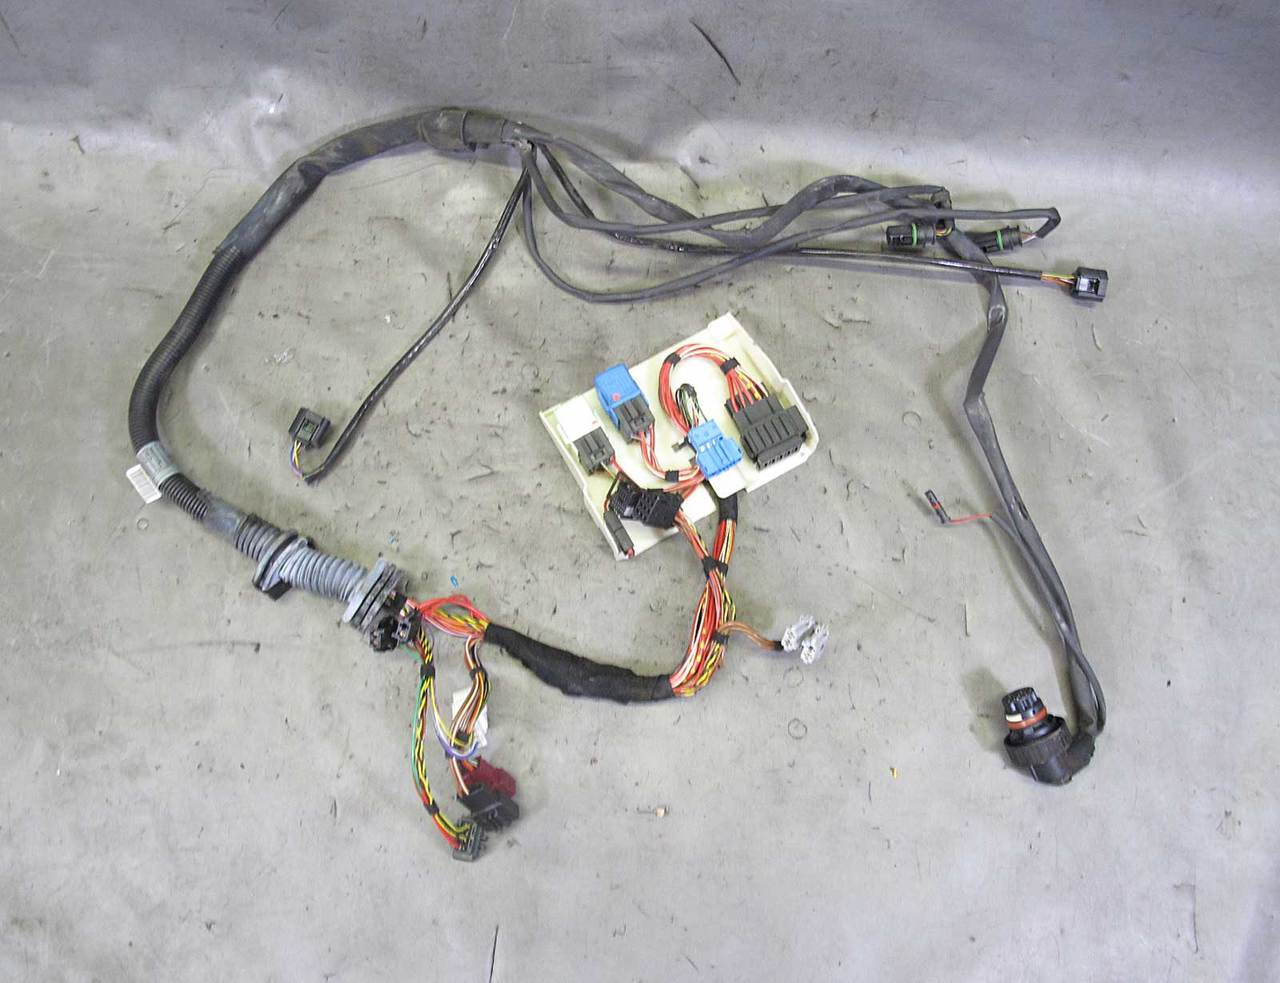 2004 2005 bmw e60 5 series m54 6cyl automatic transmission wiring harness used [ 1280 x 983 Pixel ]